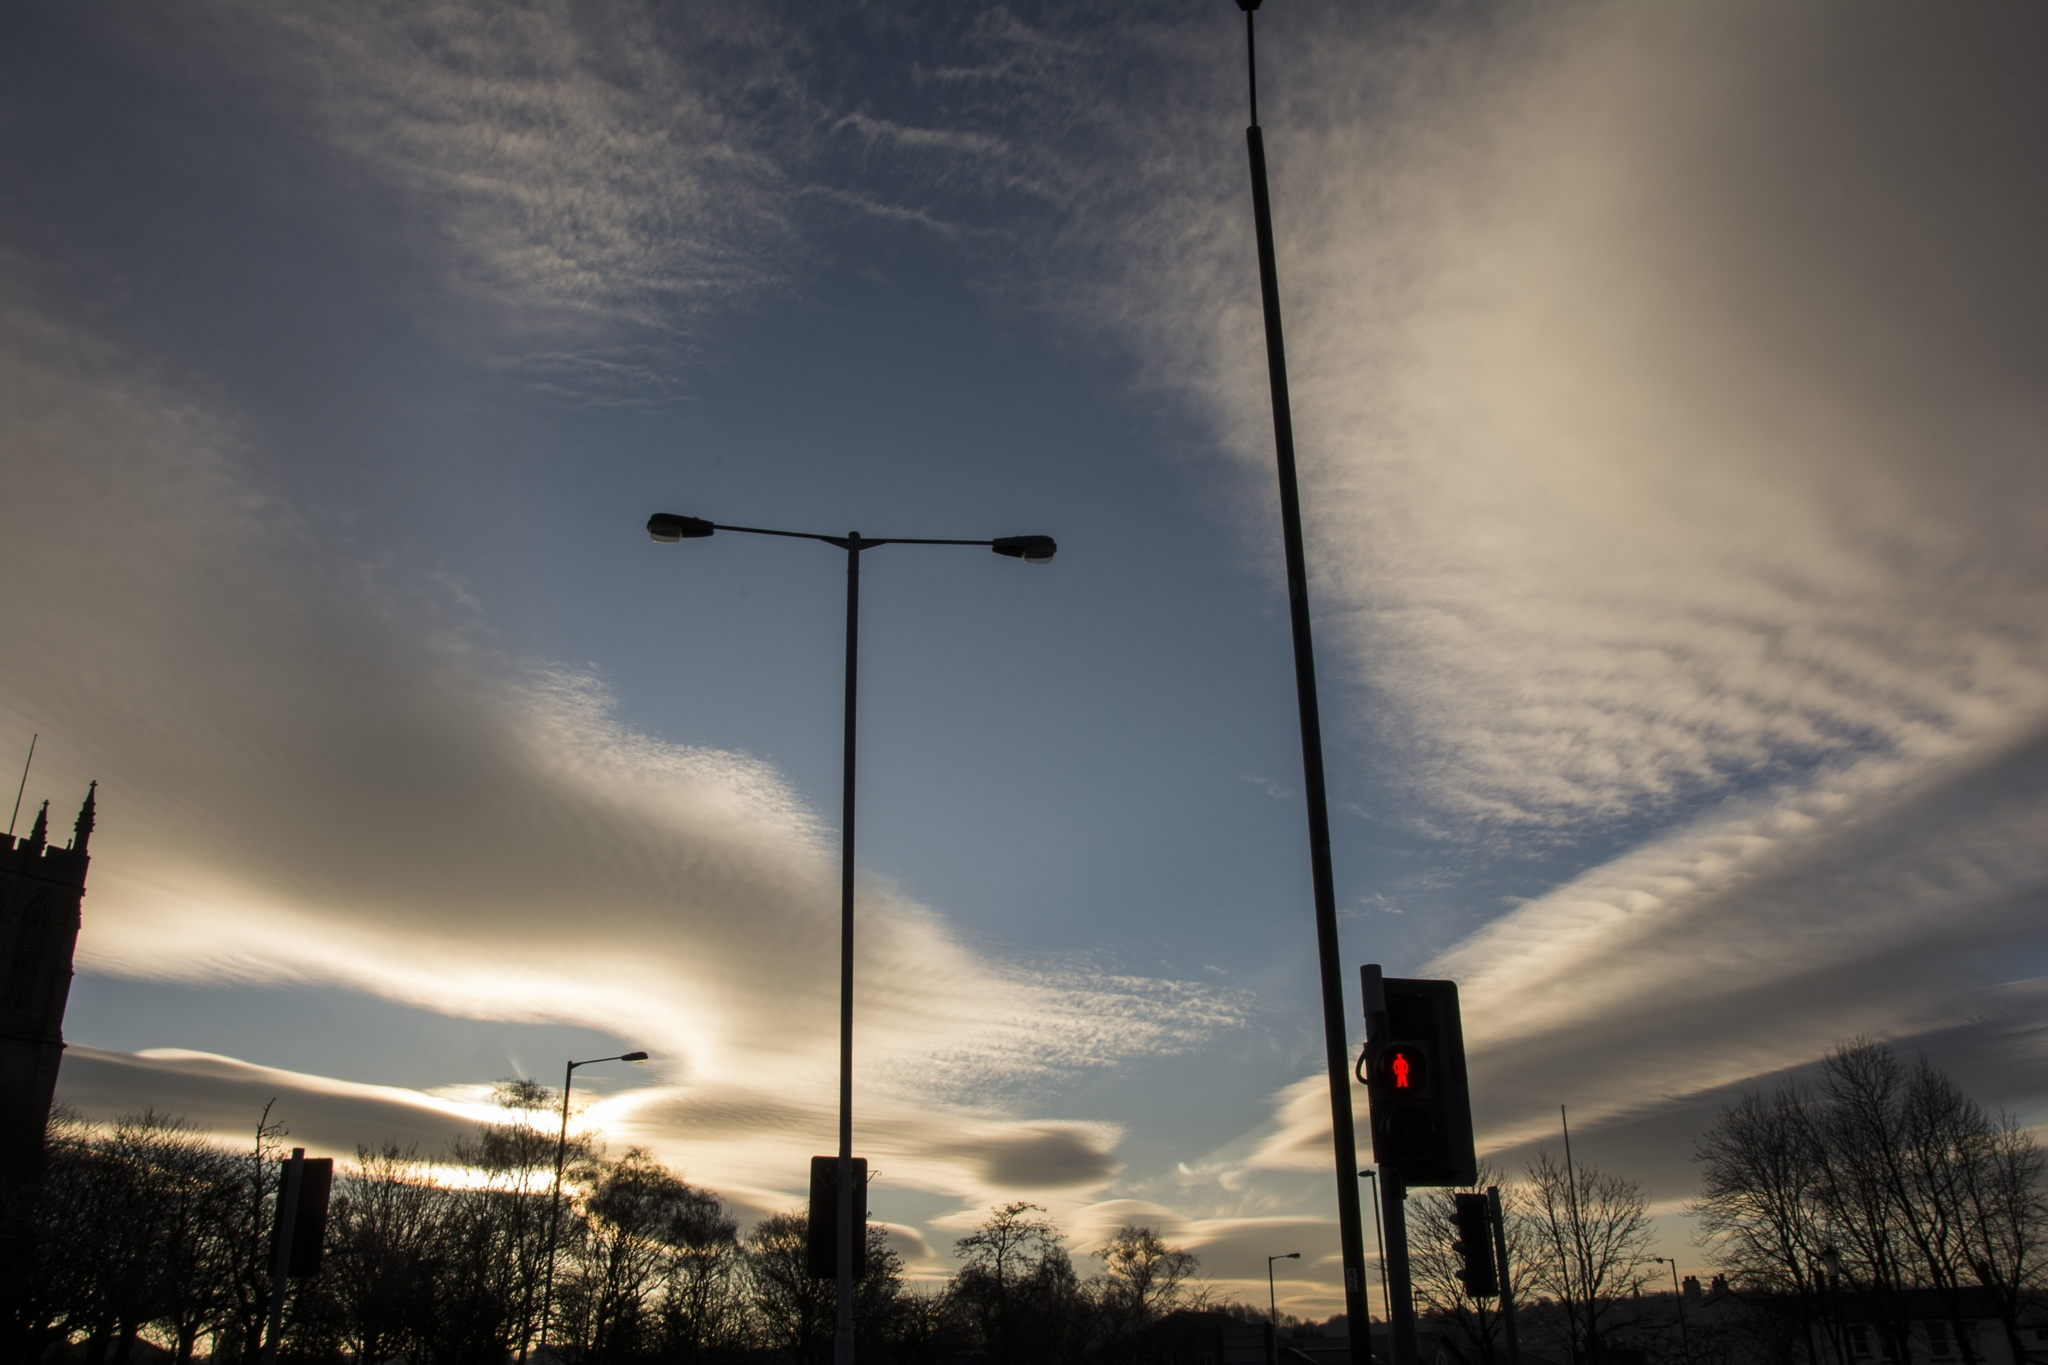 Morning clouds by geoffrey.teague.5